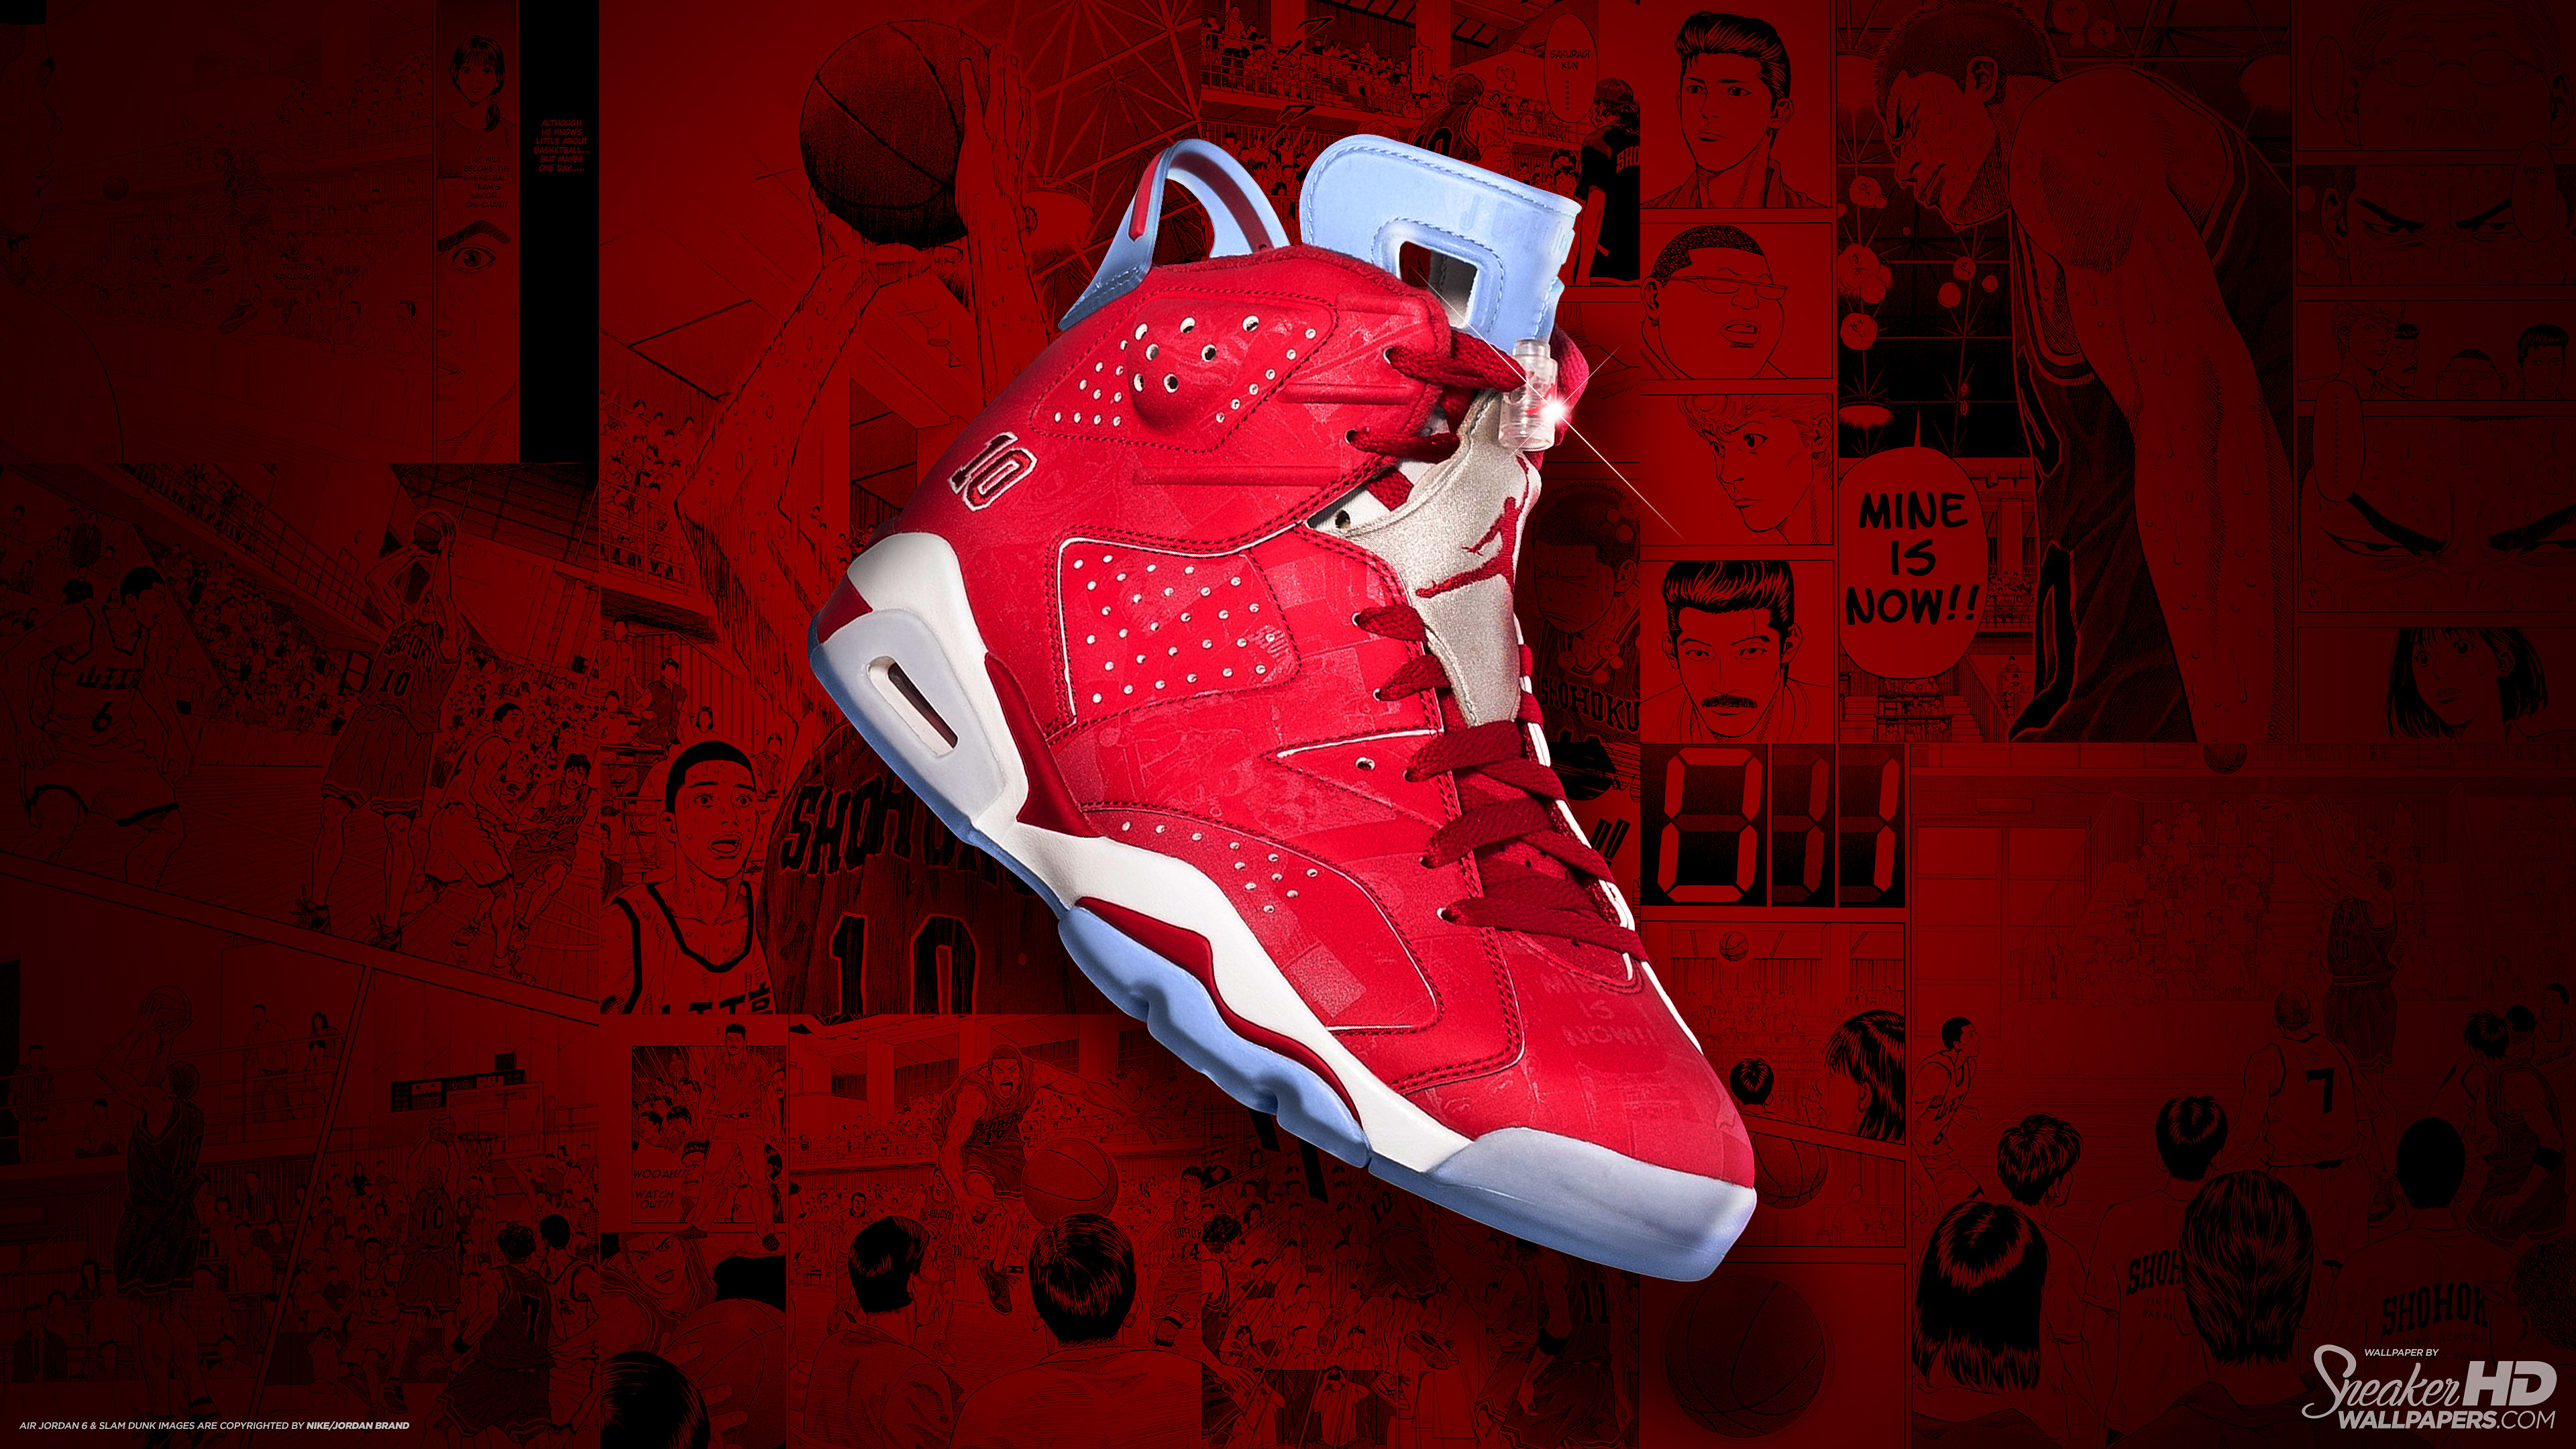 Sneakerhdwallpapers Com Your Favorite Sneakers In Hd And Mobile